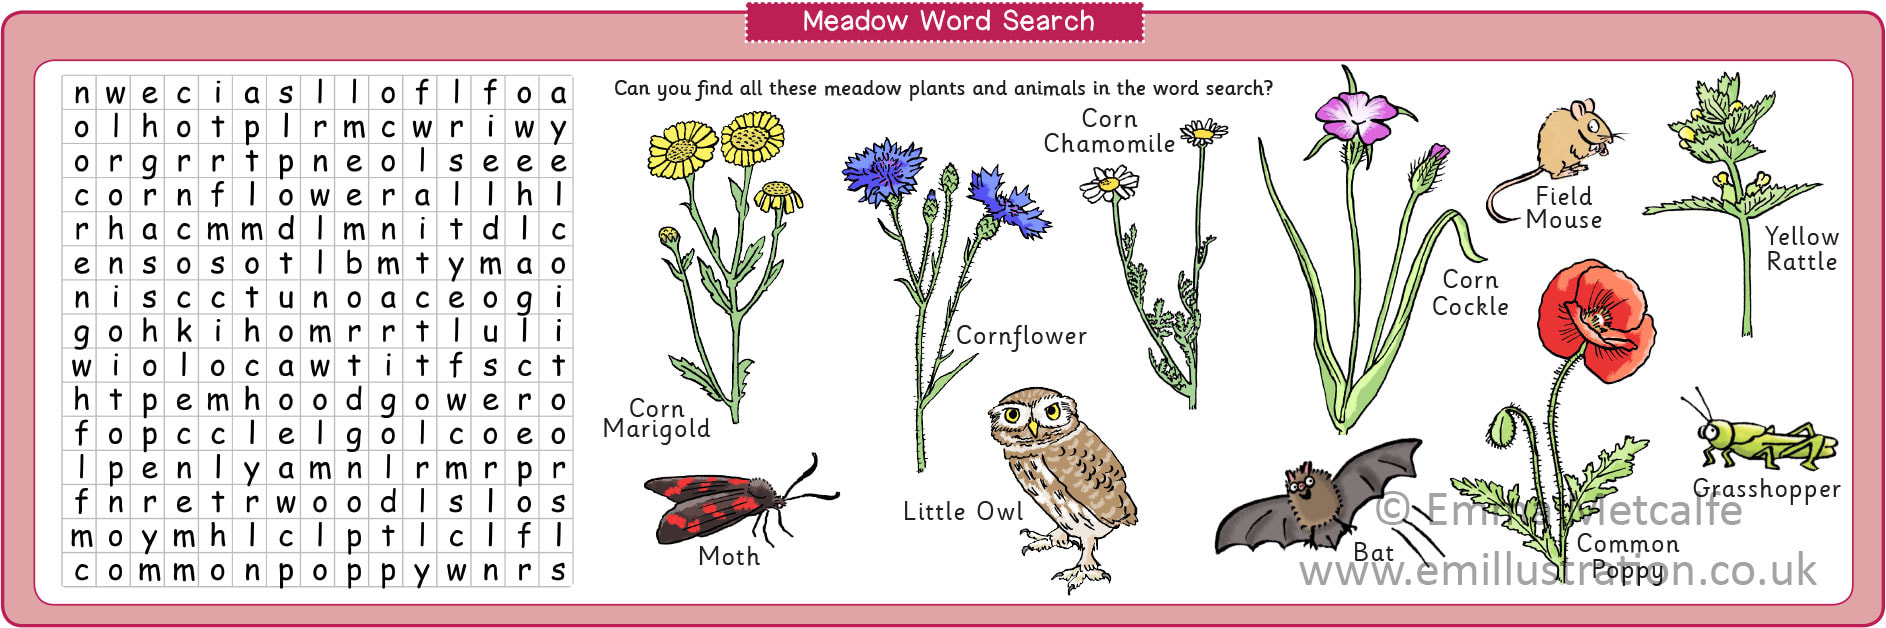 Meadow conservation educational word search illustrated by nature illustrator Emma Metcalfe